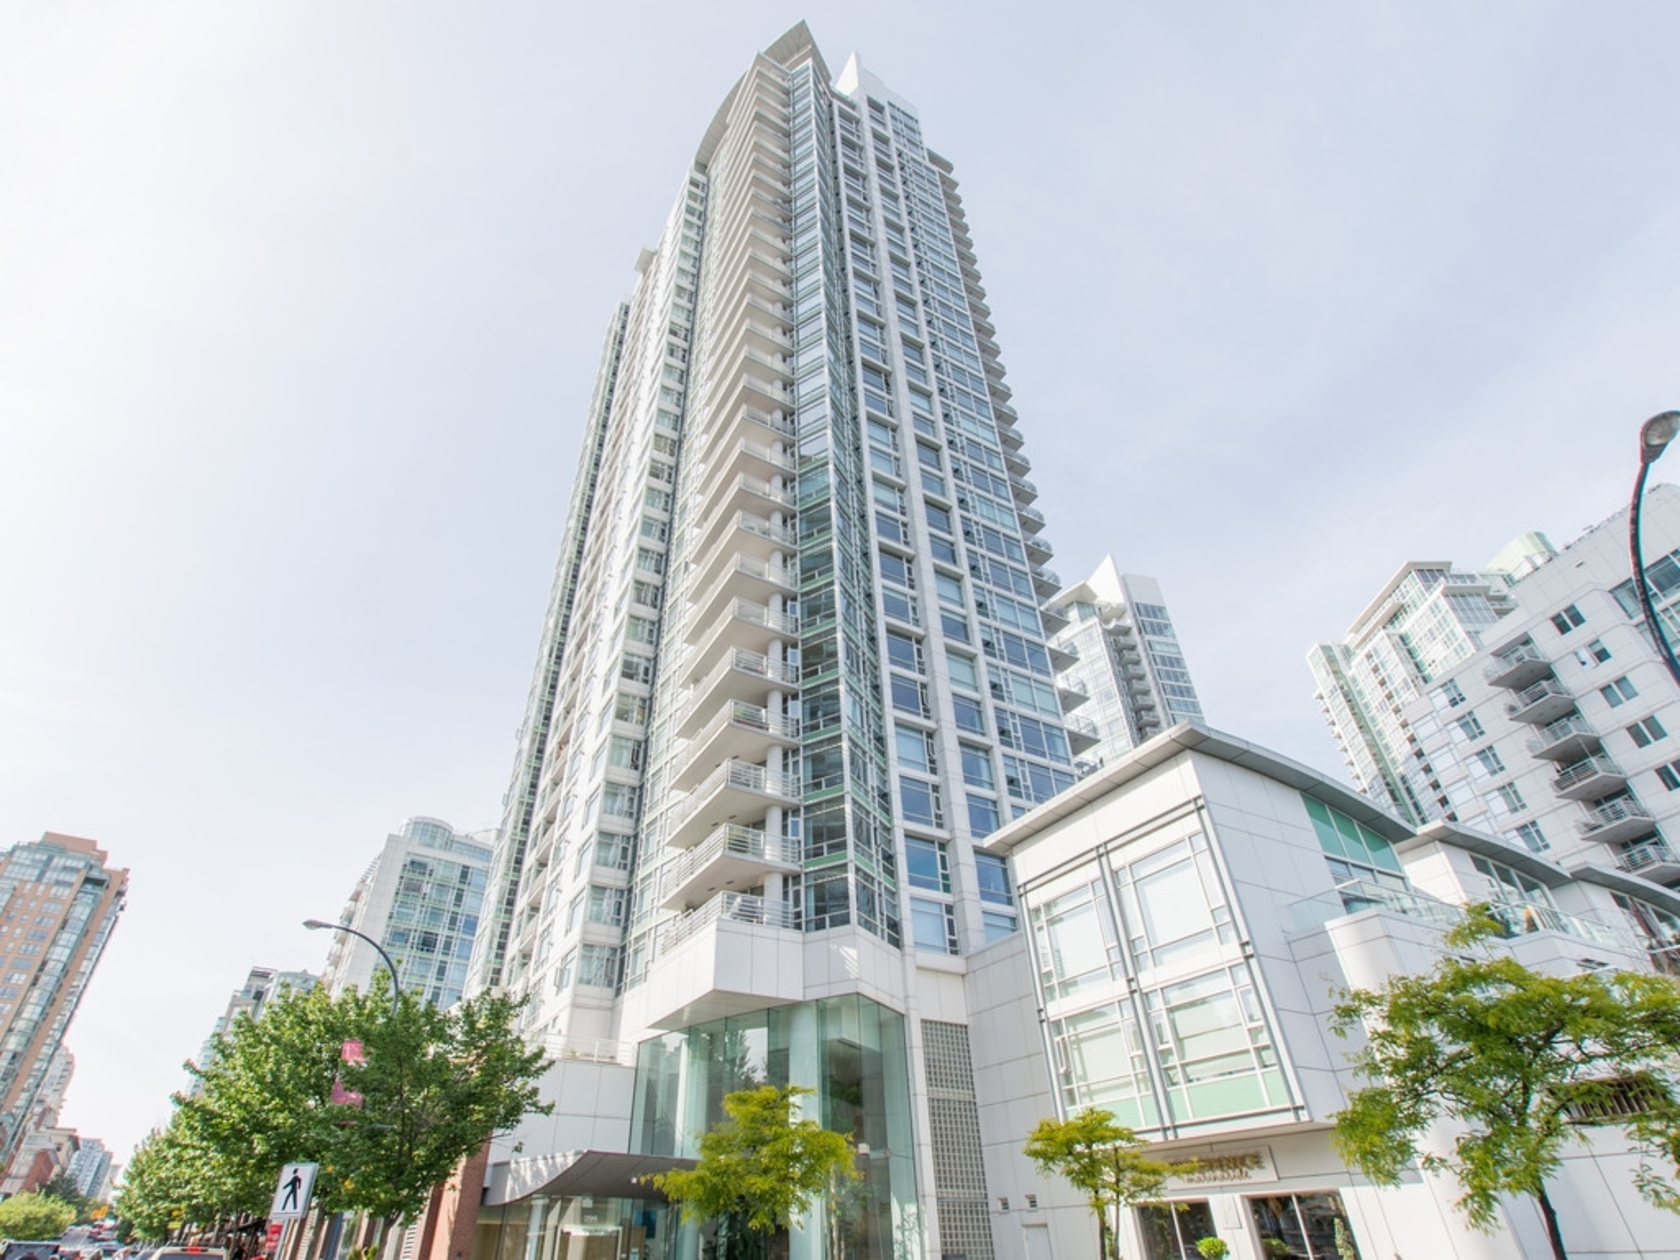 3351_ldb69e5b3_1 at 1199 Marinaside Crescent, Yaletown, Vancouver West